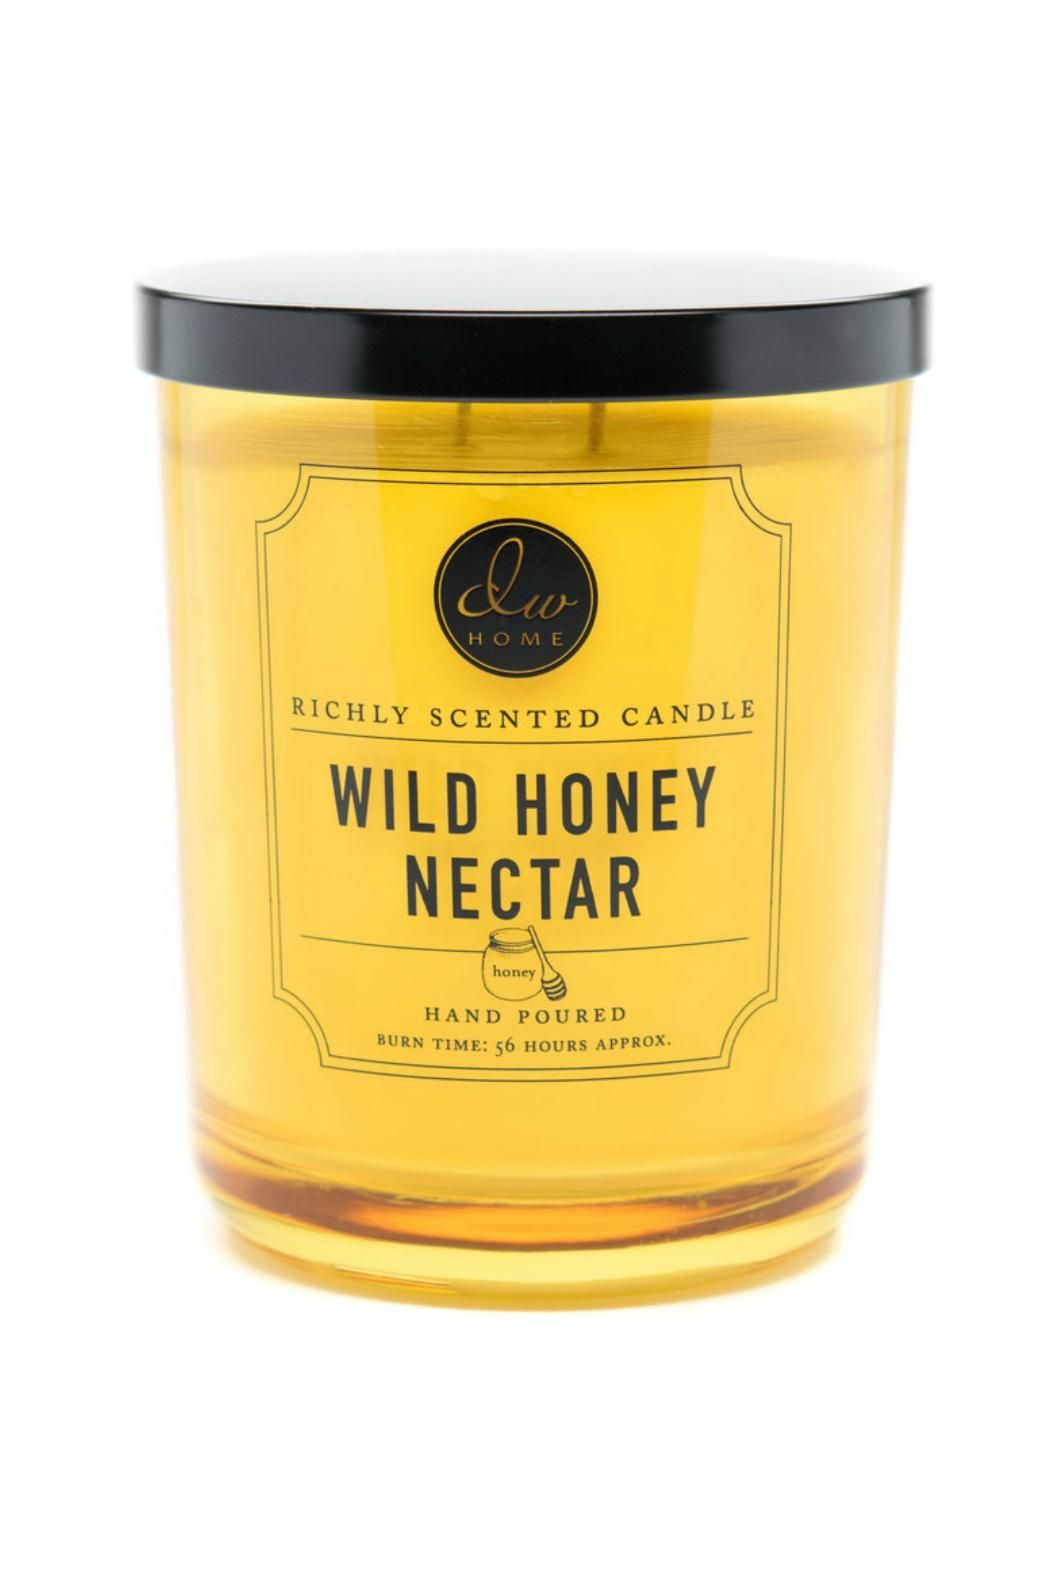 Dw Home Large Wild Honey Nectar Candle With Images Scented